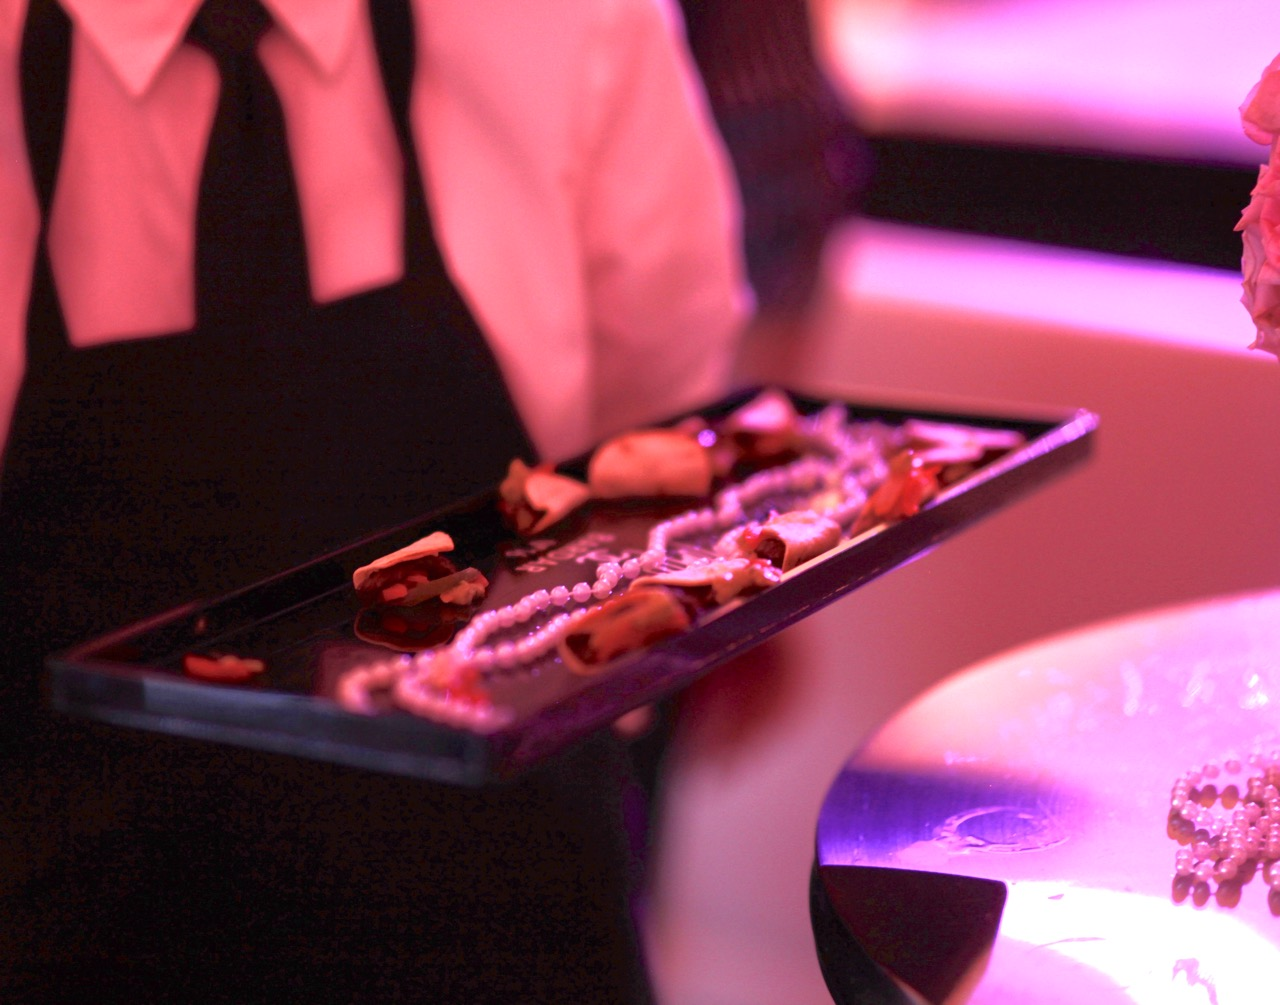 Branded black lacquer serving trays for passed hors d'oeuvres